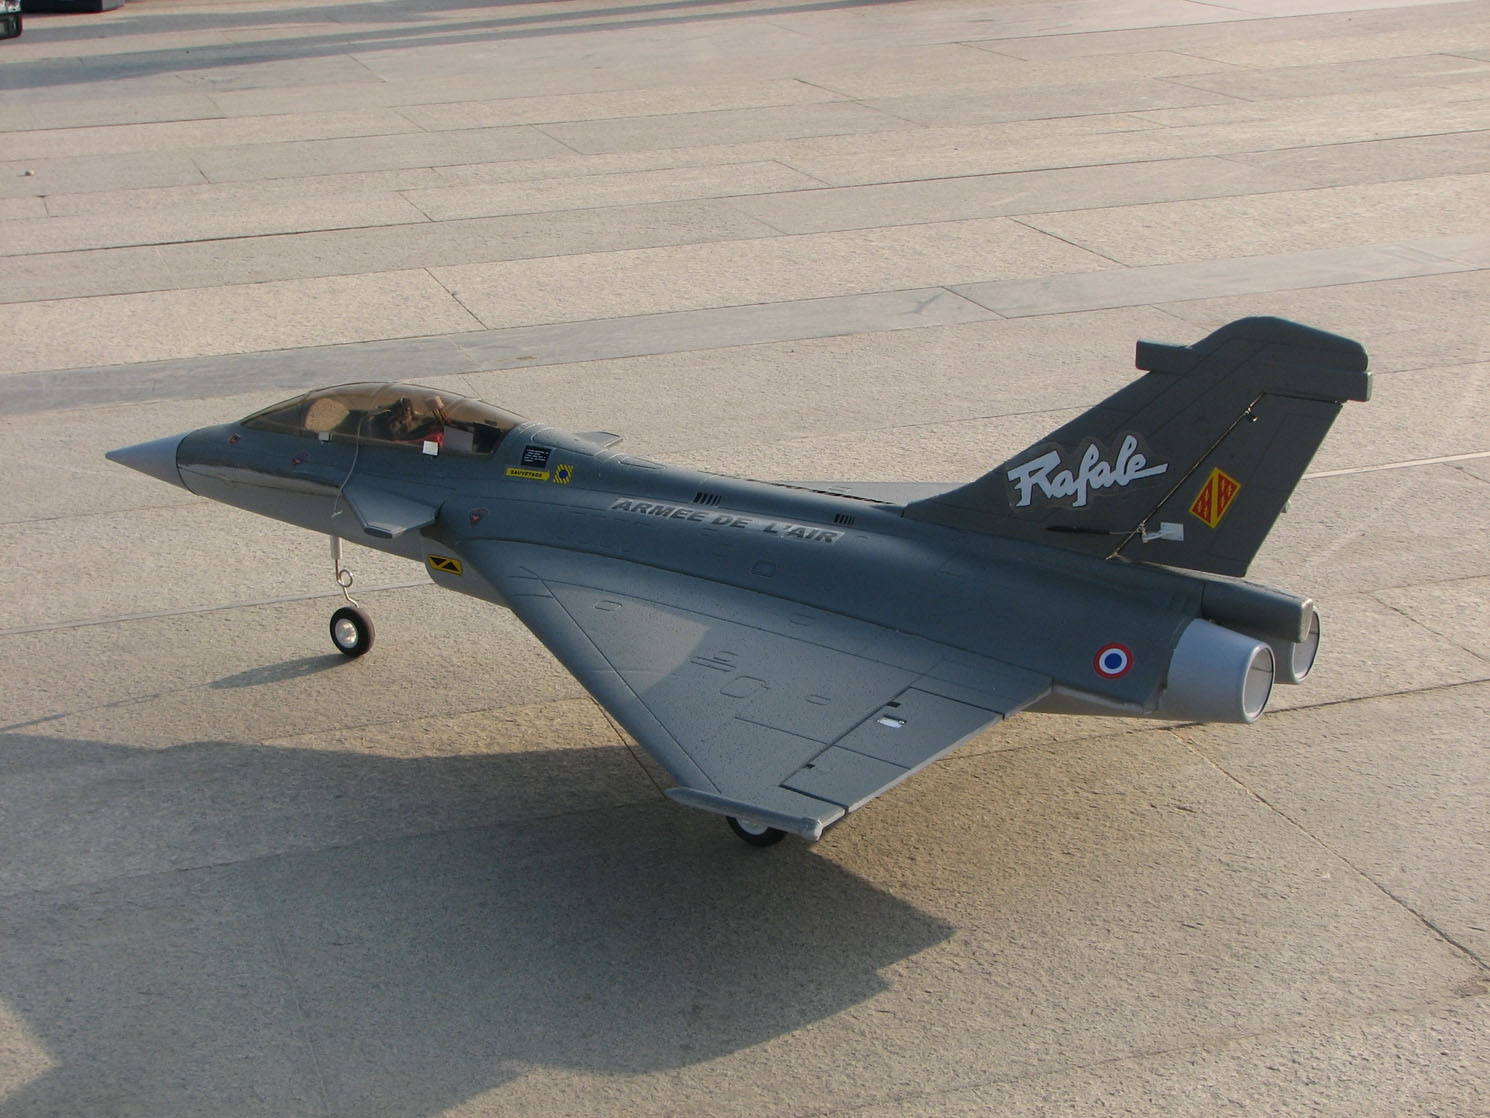 Dassault sees prospects for Rafale in Canada: report - Asian ...